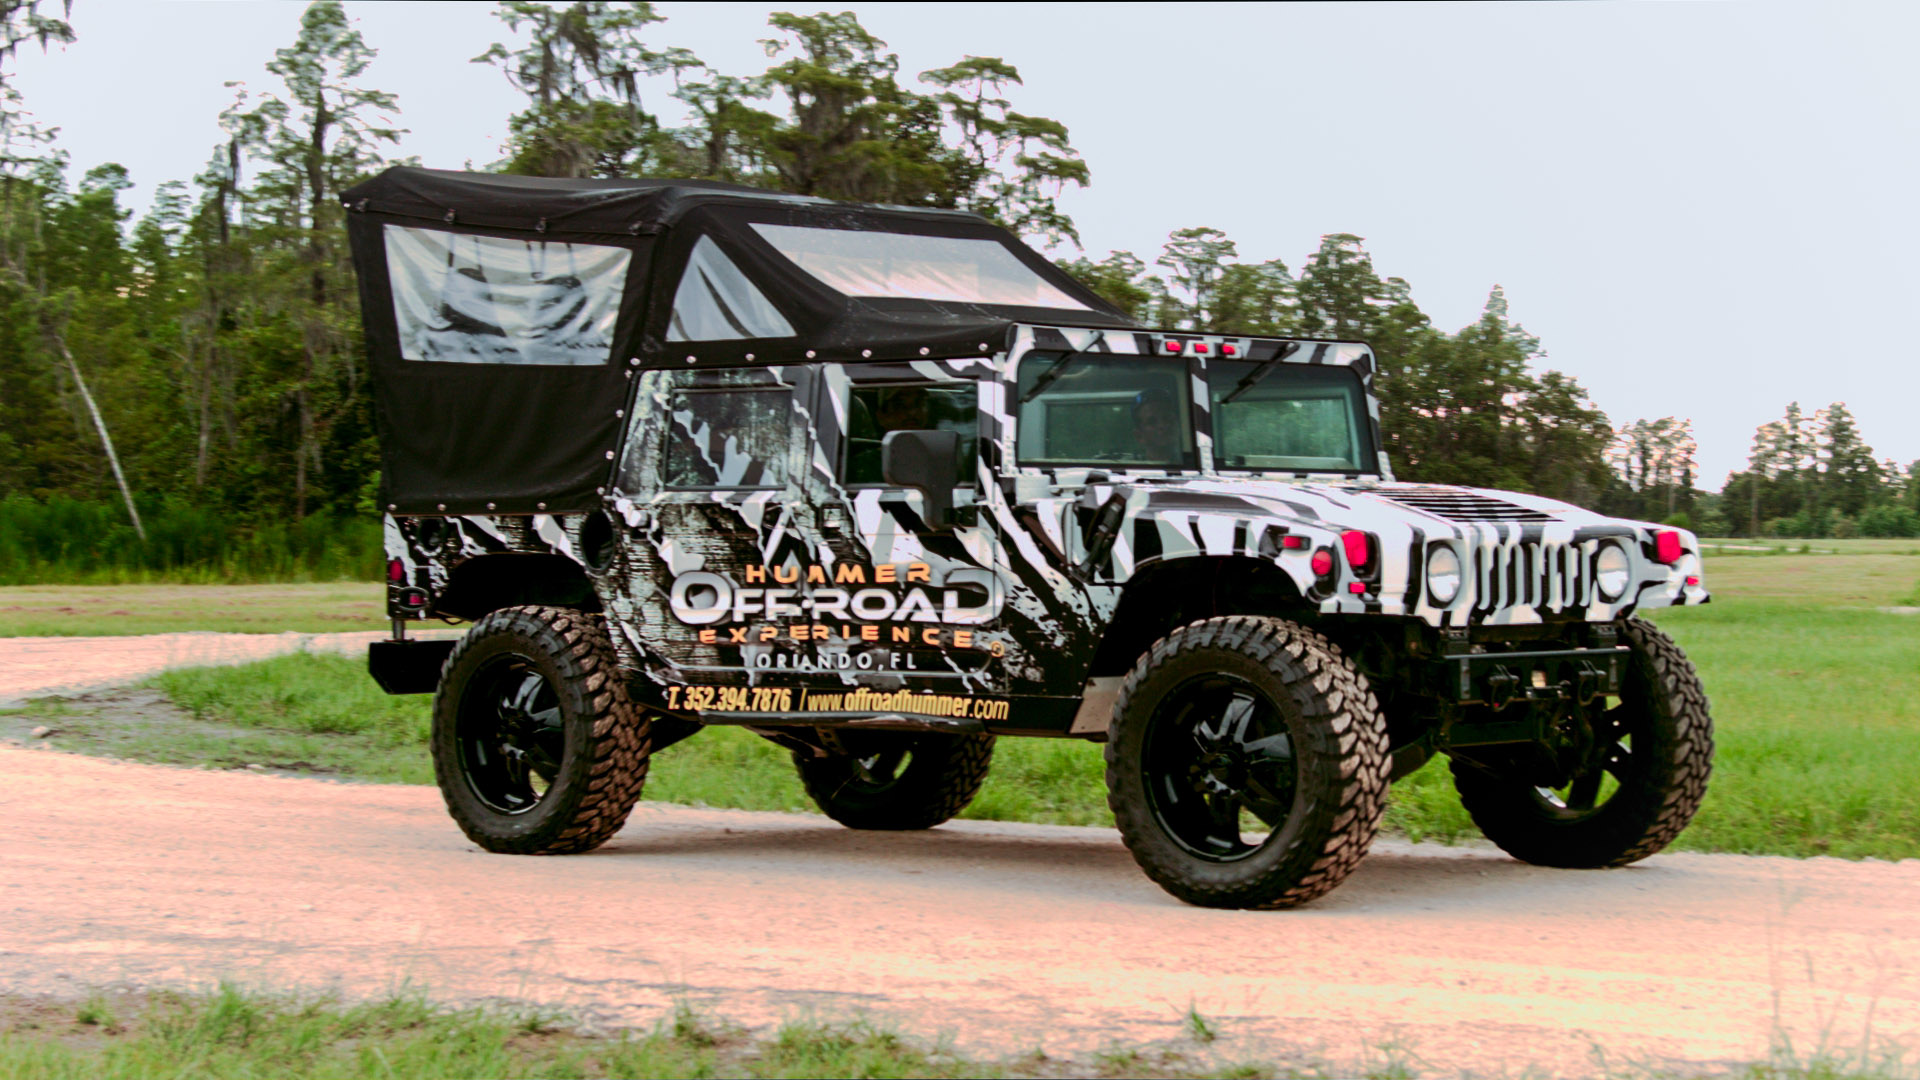 Hummer fRoad Experience